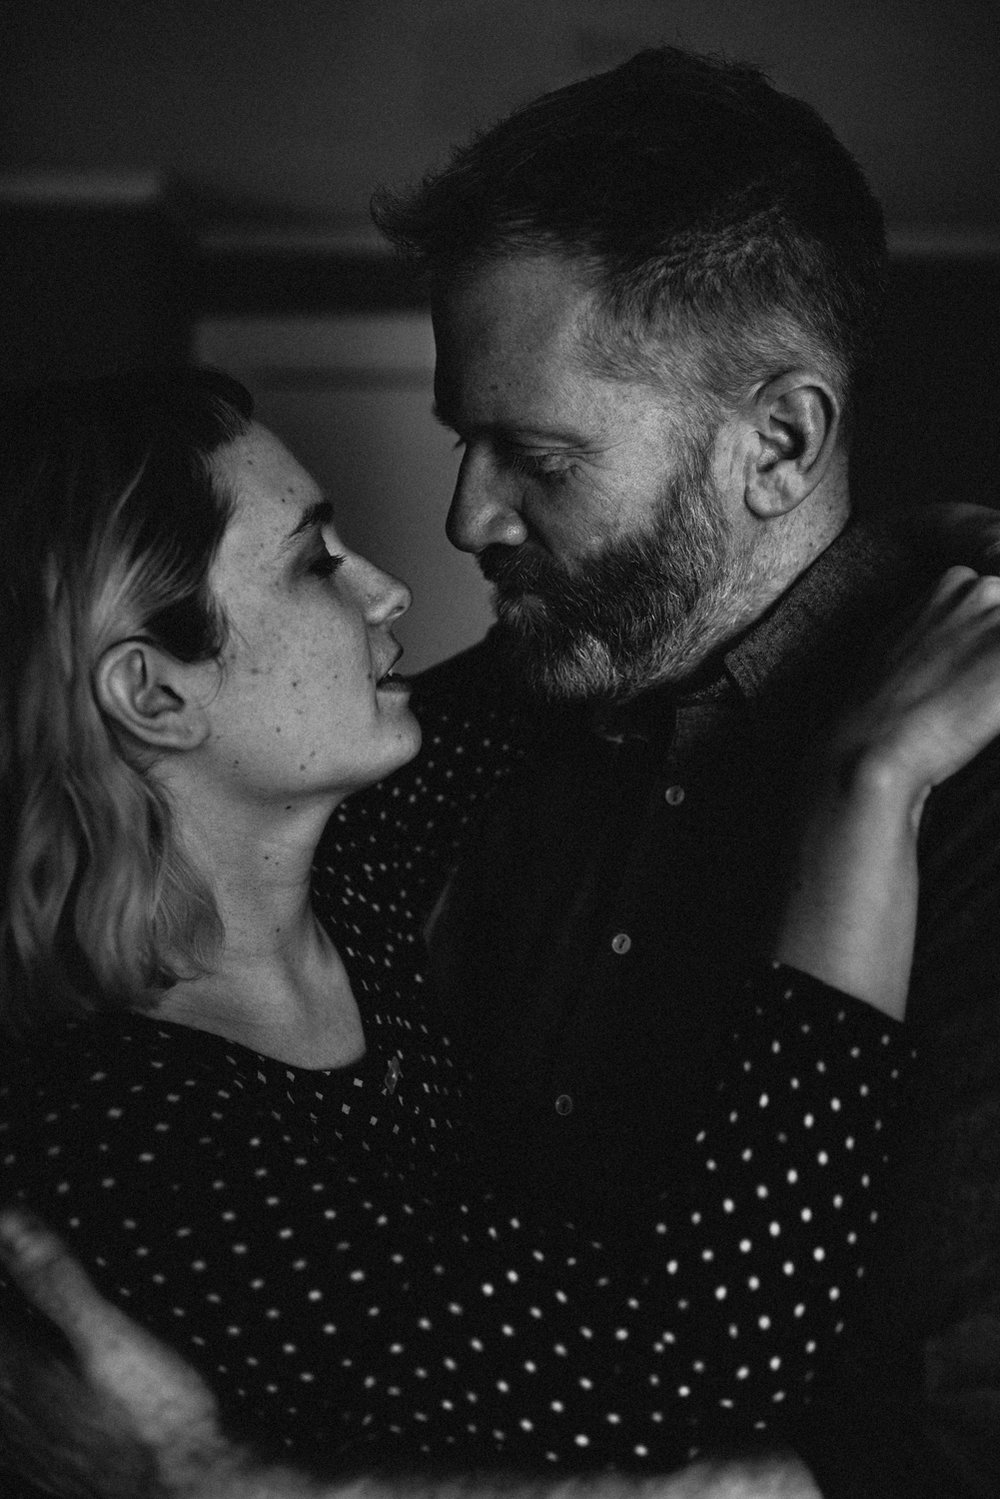 Couple-almost-kissing-black-white-vsco-copyright-Elisabeth-Waller.jpg